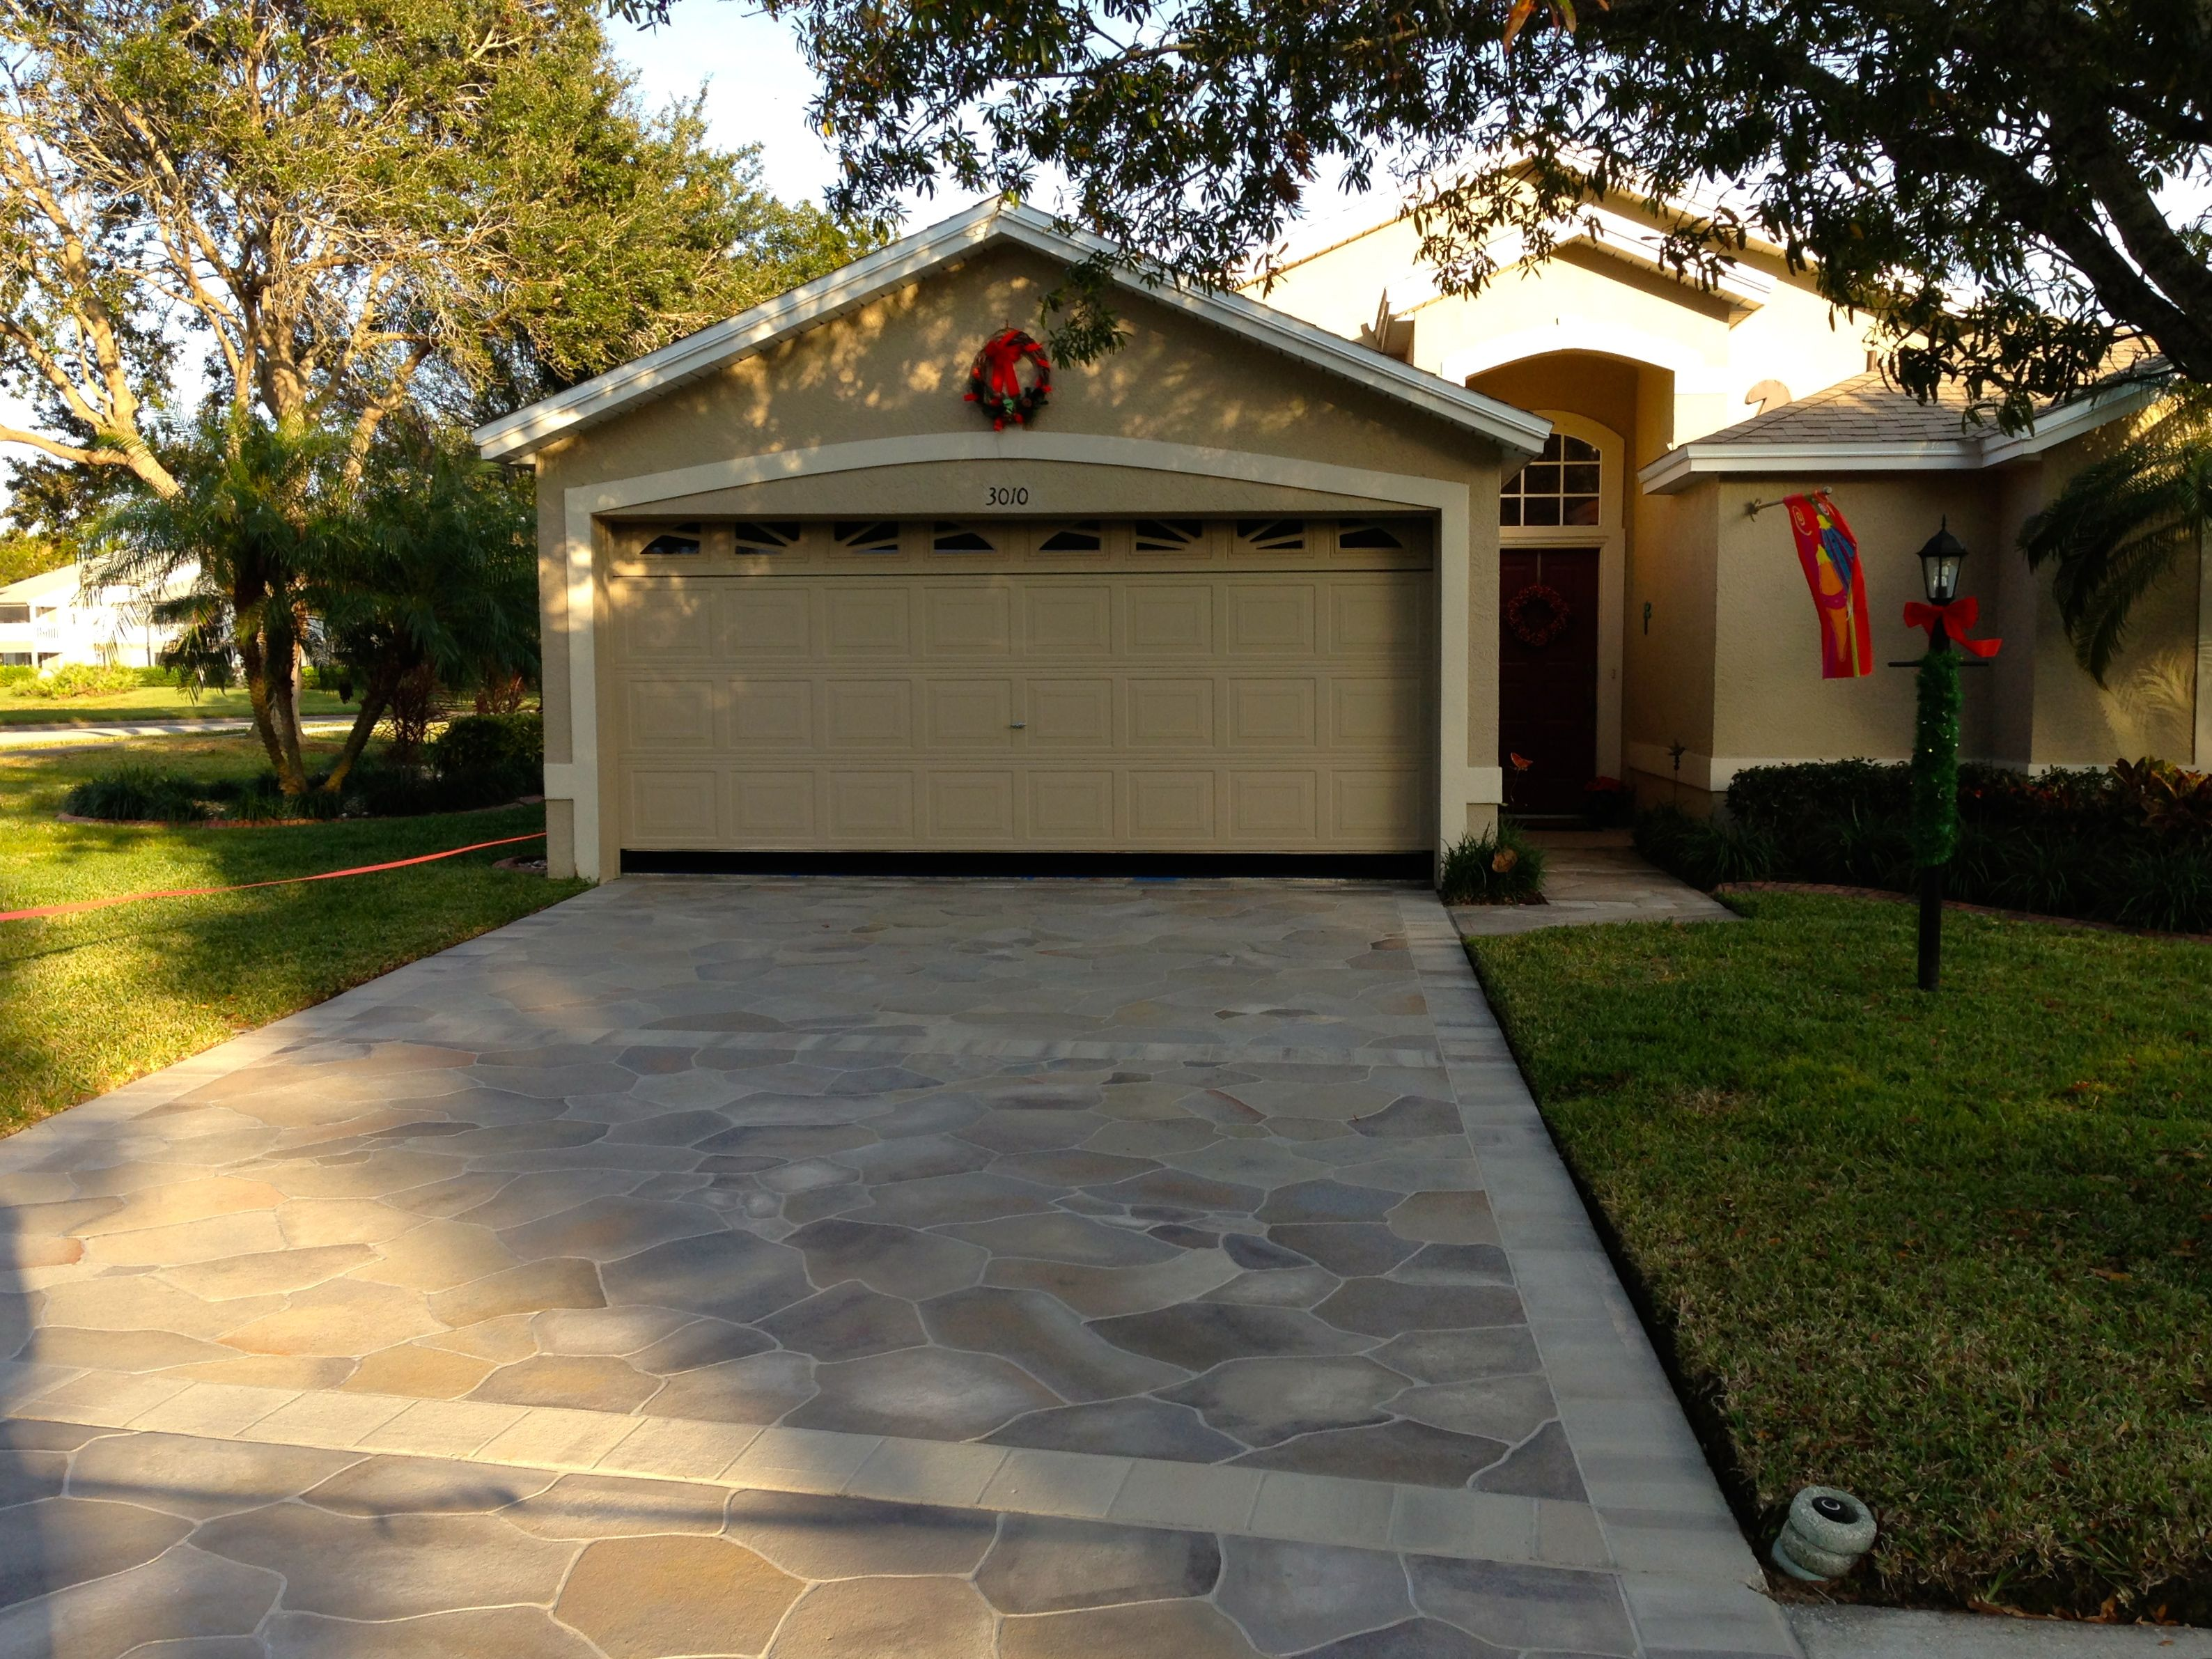 Concrete Design Ideas img_3143 Painted Driveways The Villages Florida Concrete Designs Florida Driveway Decorating Ideas